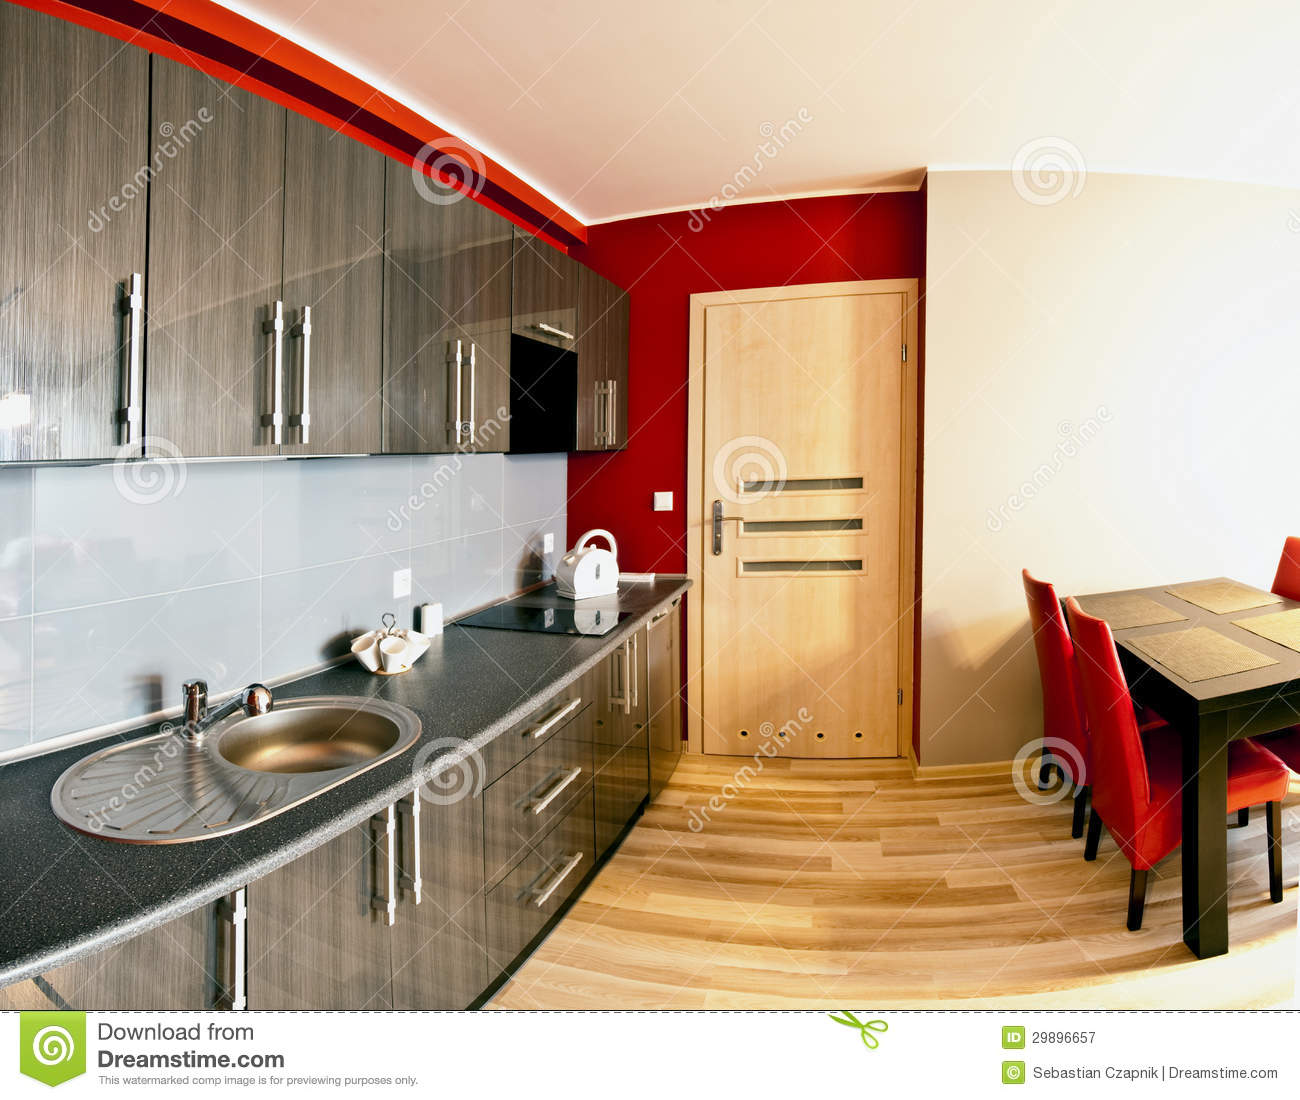 Combined kitchen and dining room stock image image 29896657 for Dining room sink designs